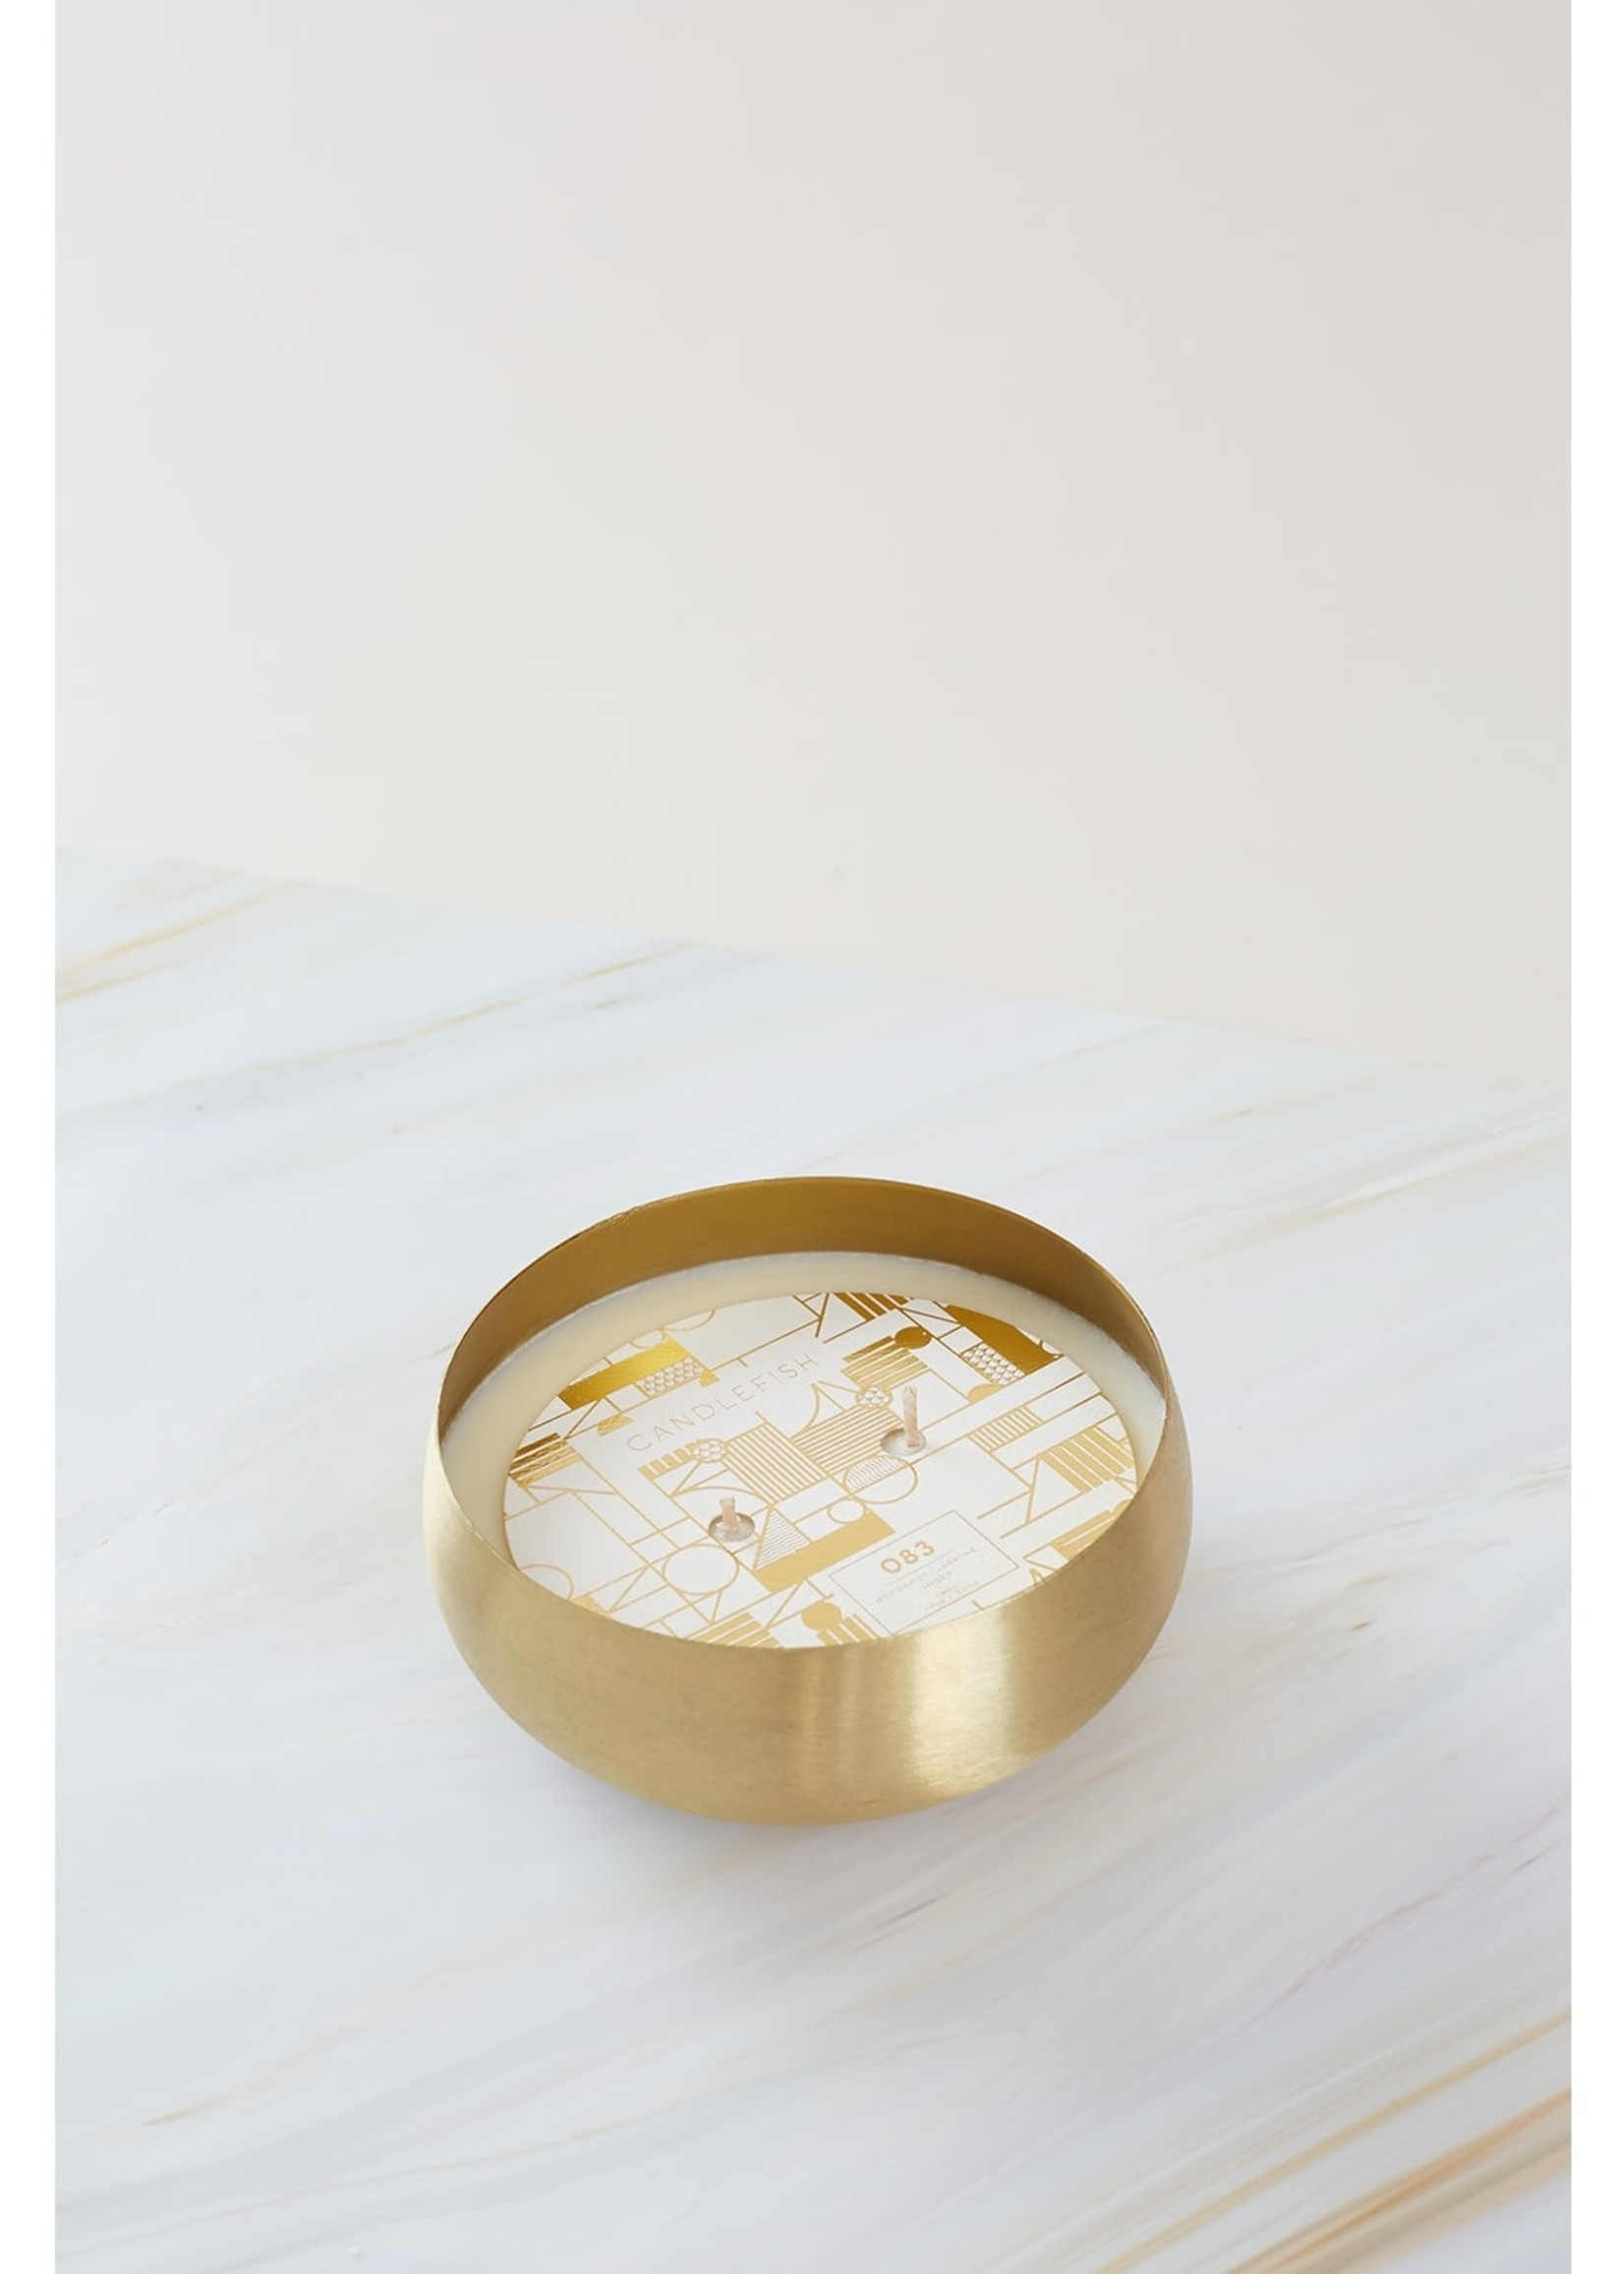 No. 83 Small Gold Bowl Candle 14 oz